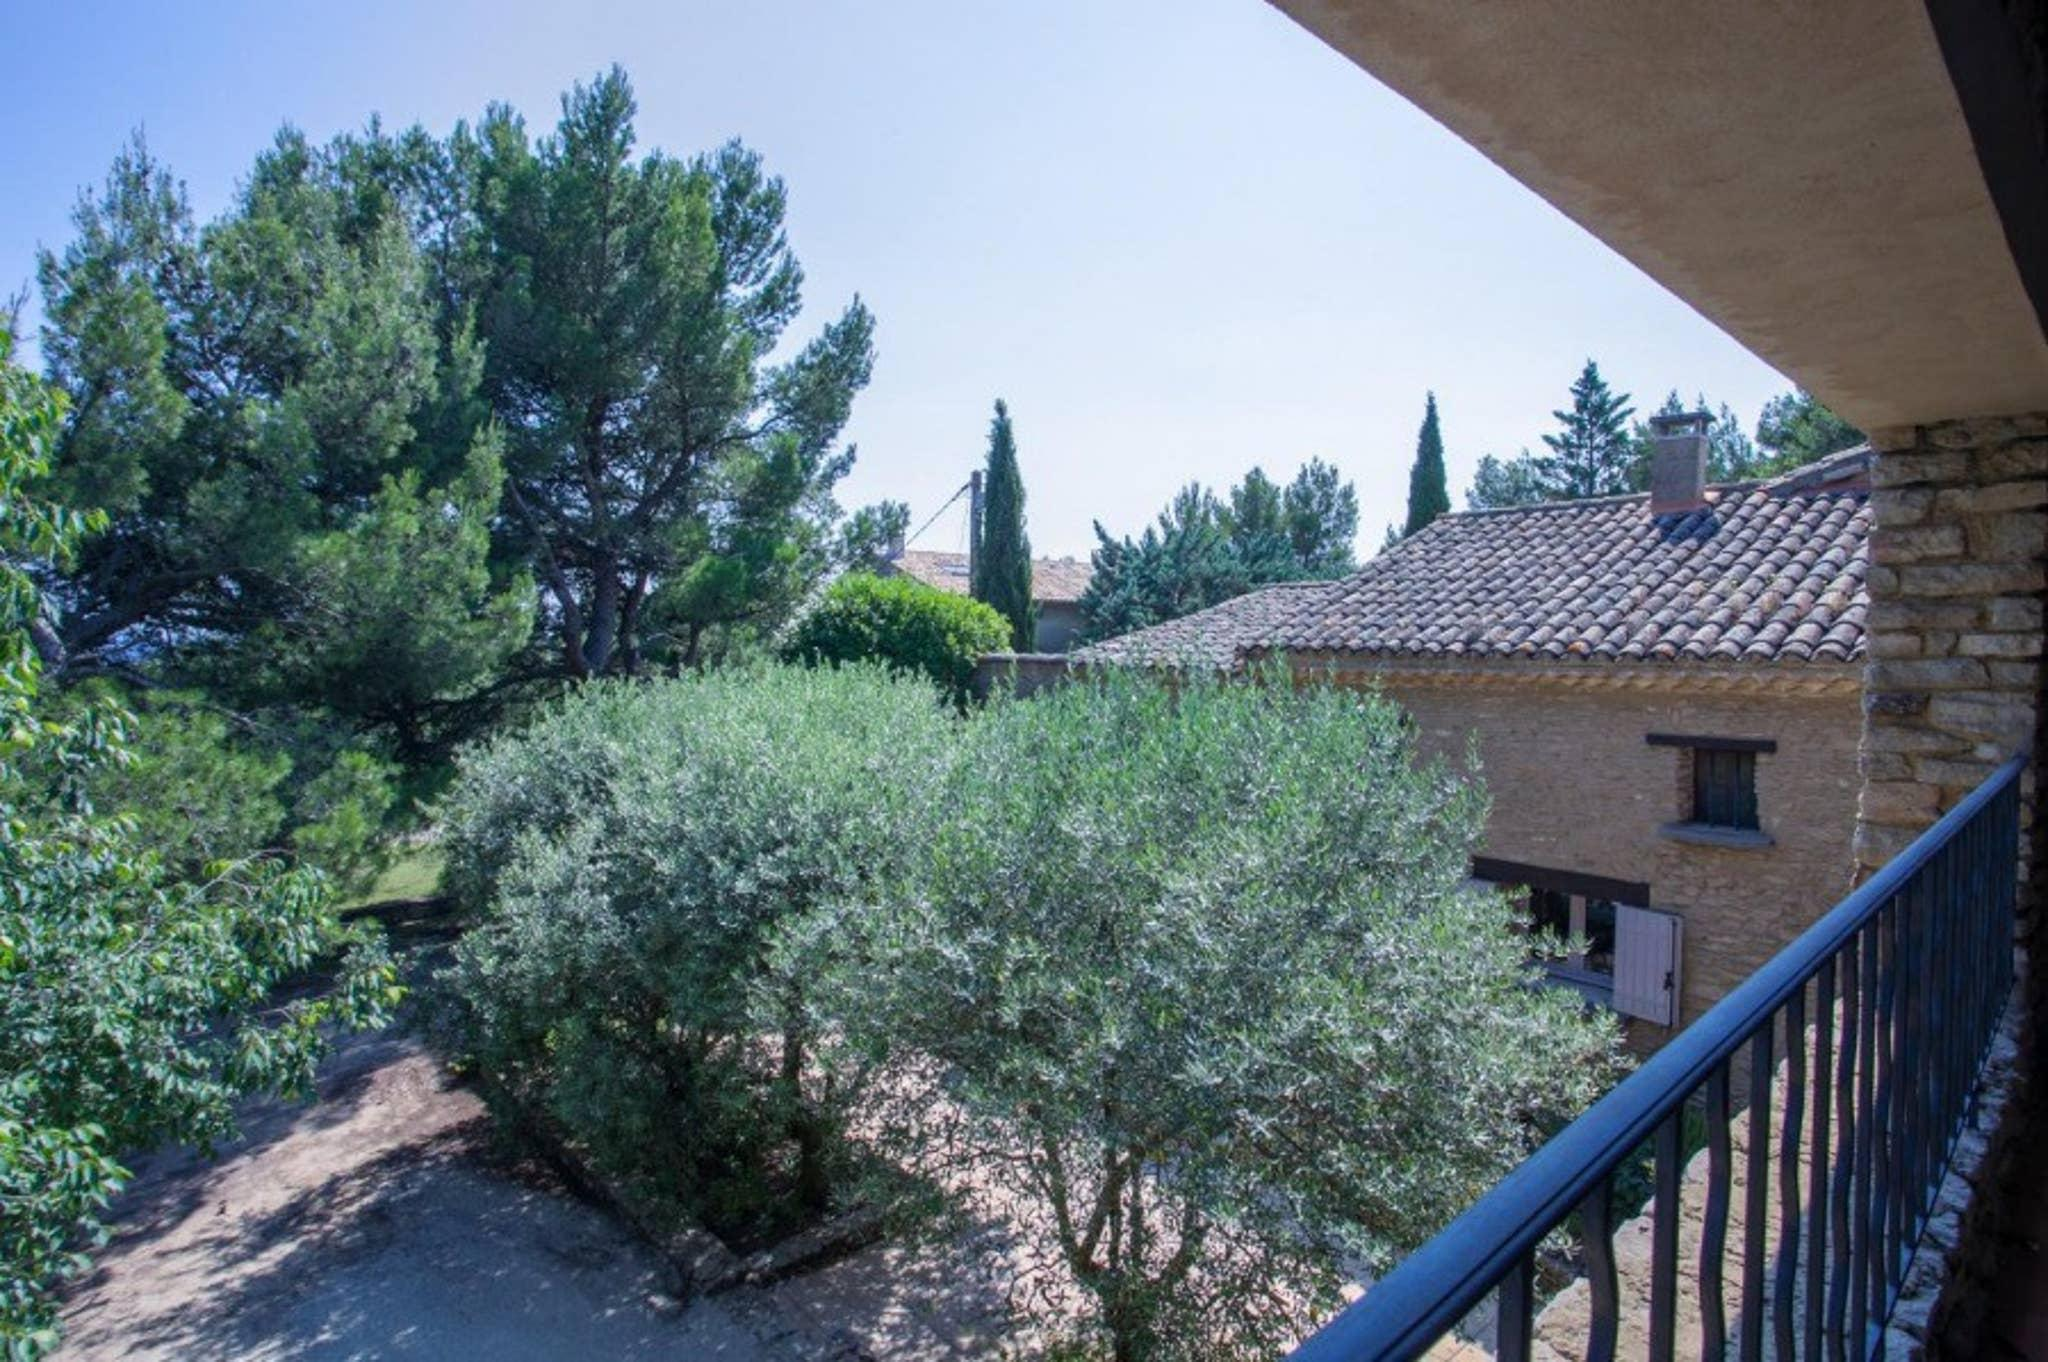 My Provence - Sumptuousness And Tranquility